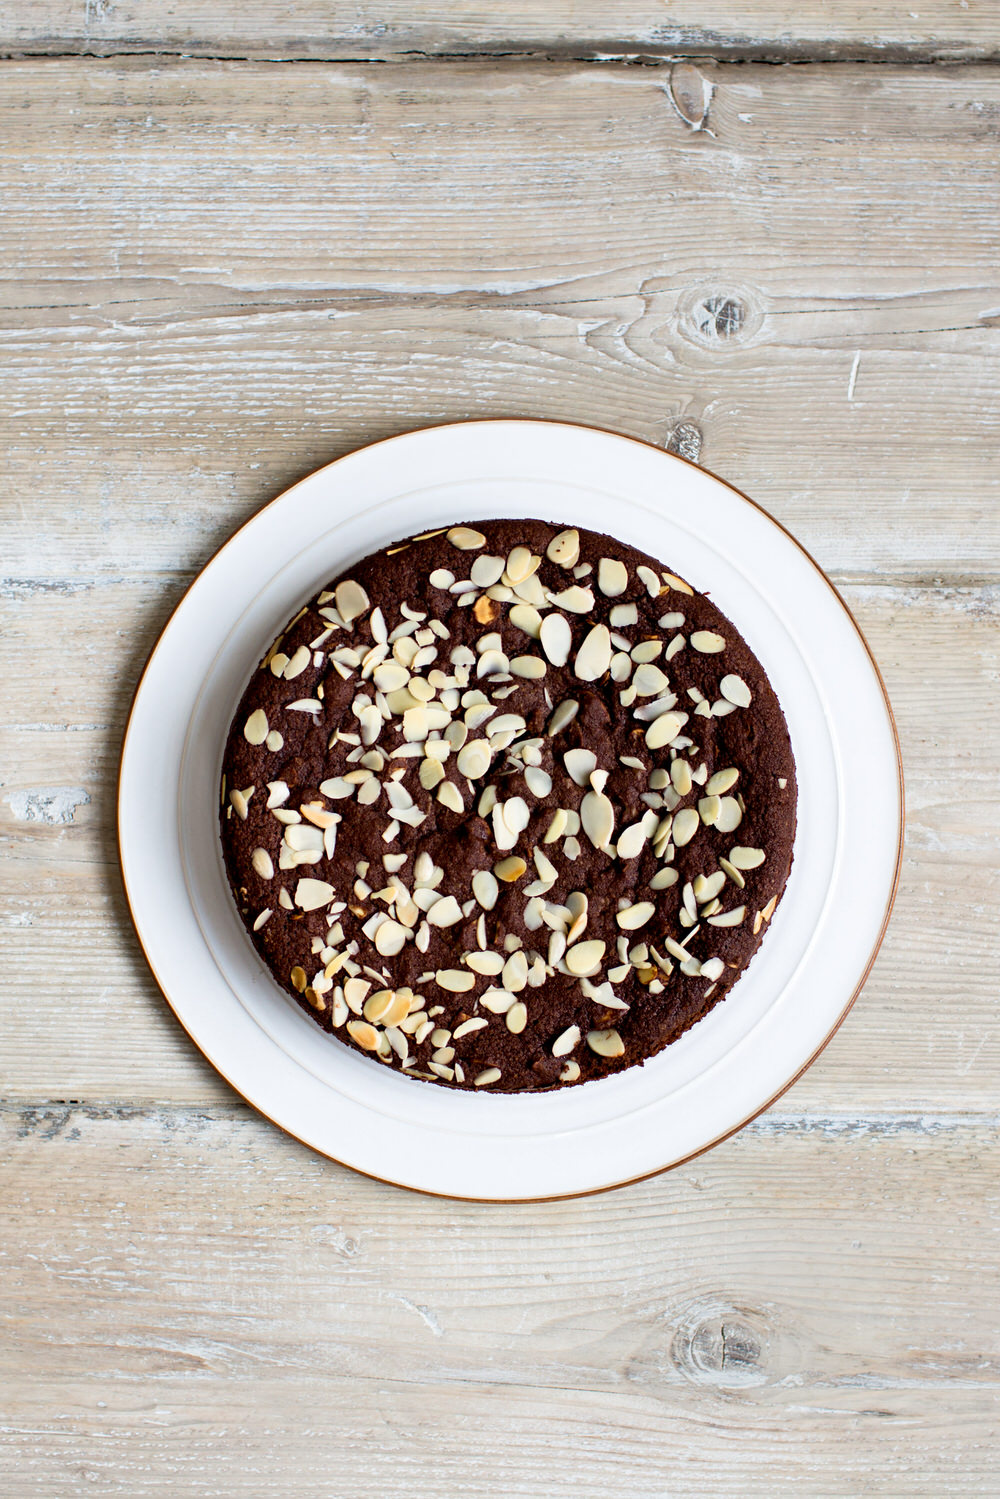 chocolate-almond-cake-bakery-wholesale-glasgow-big-bear-bakery.jpg